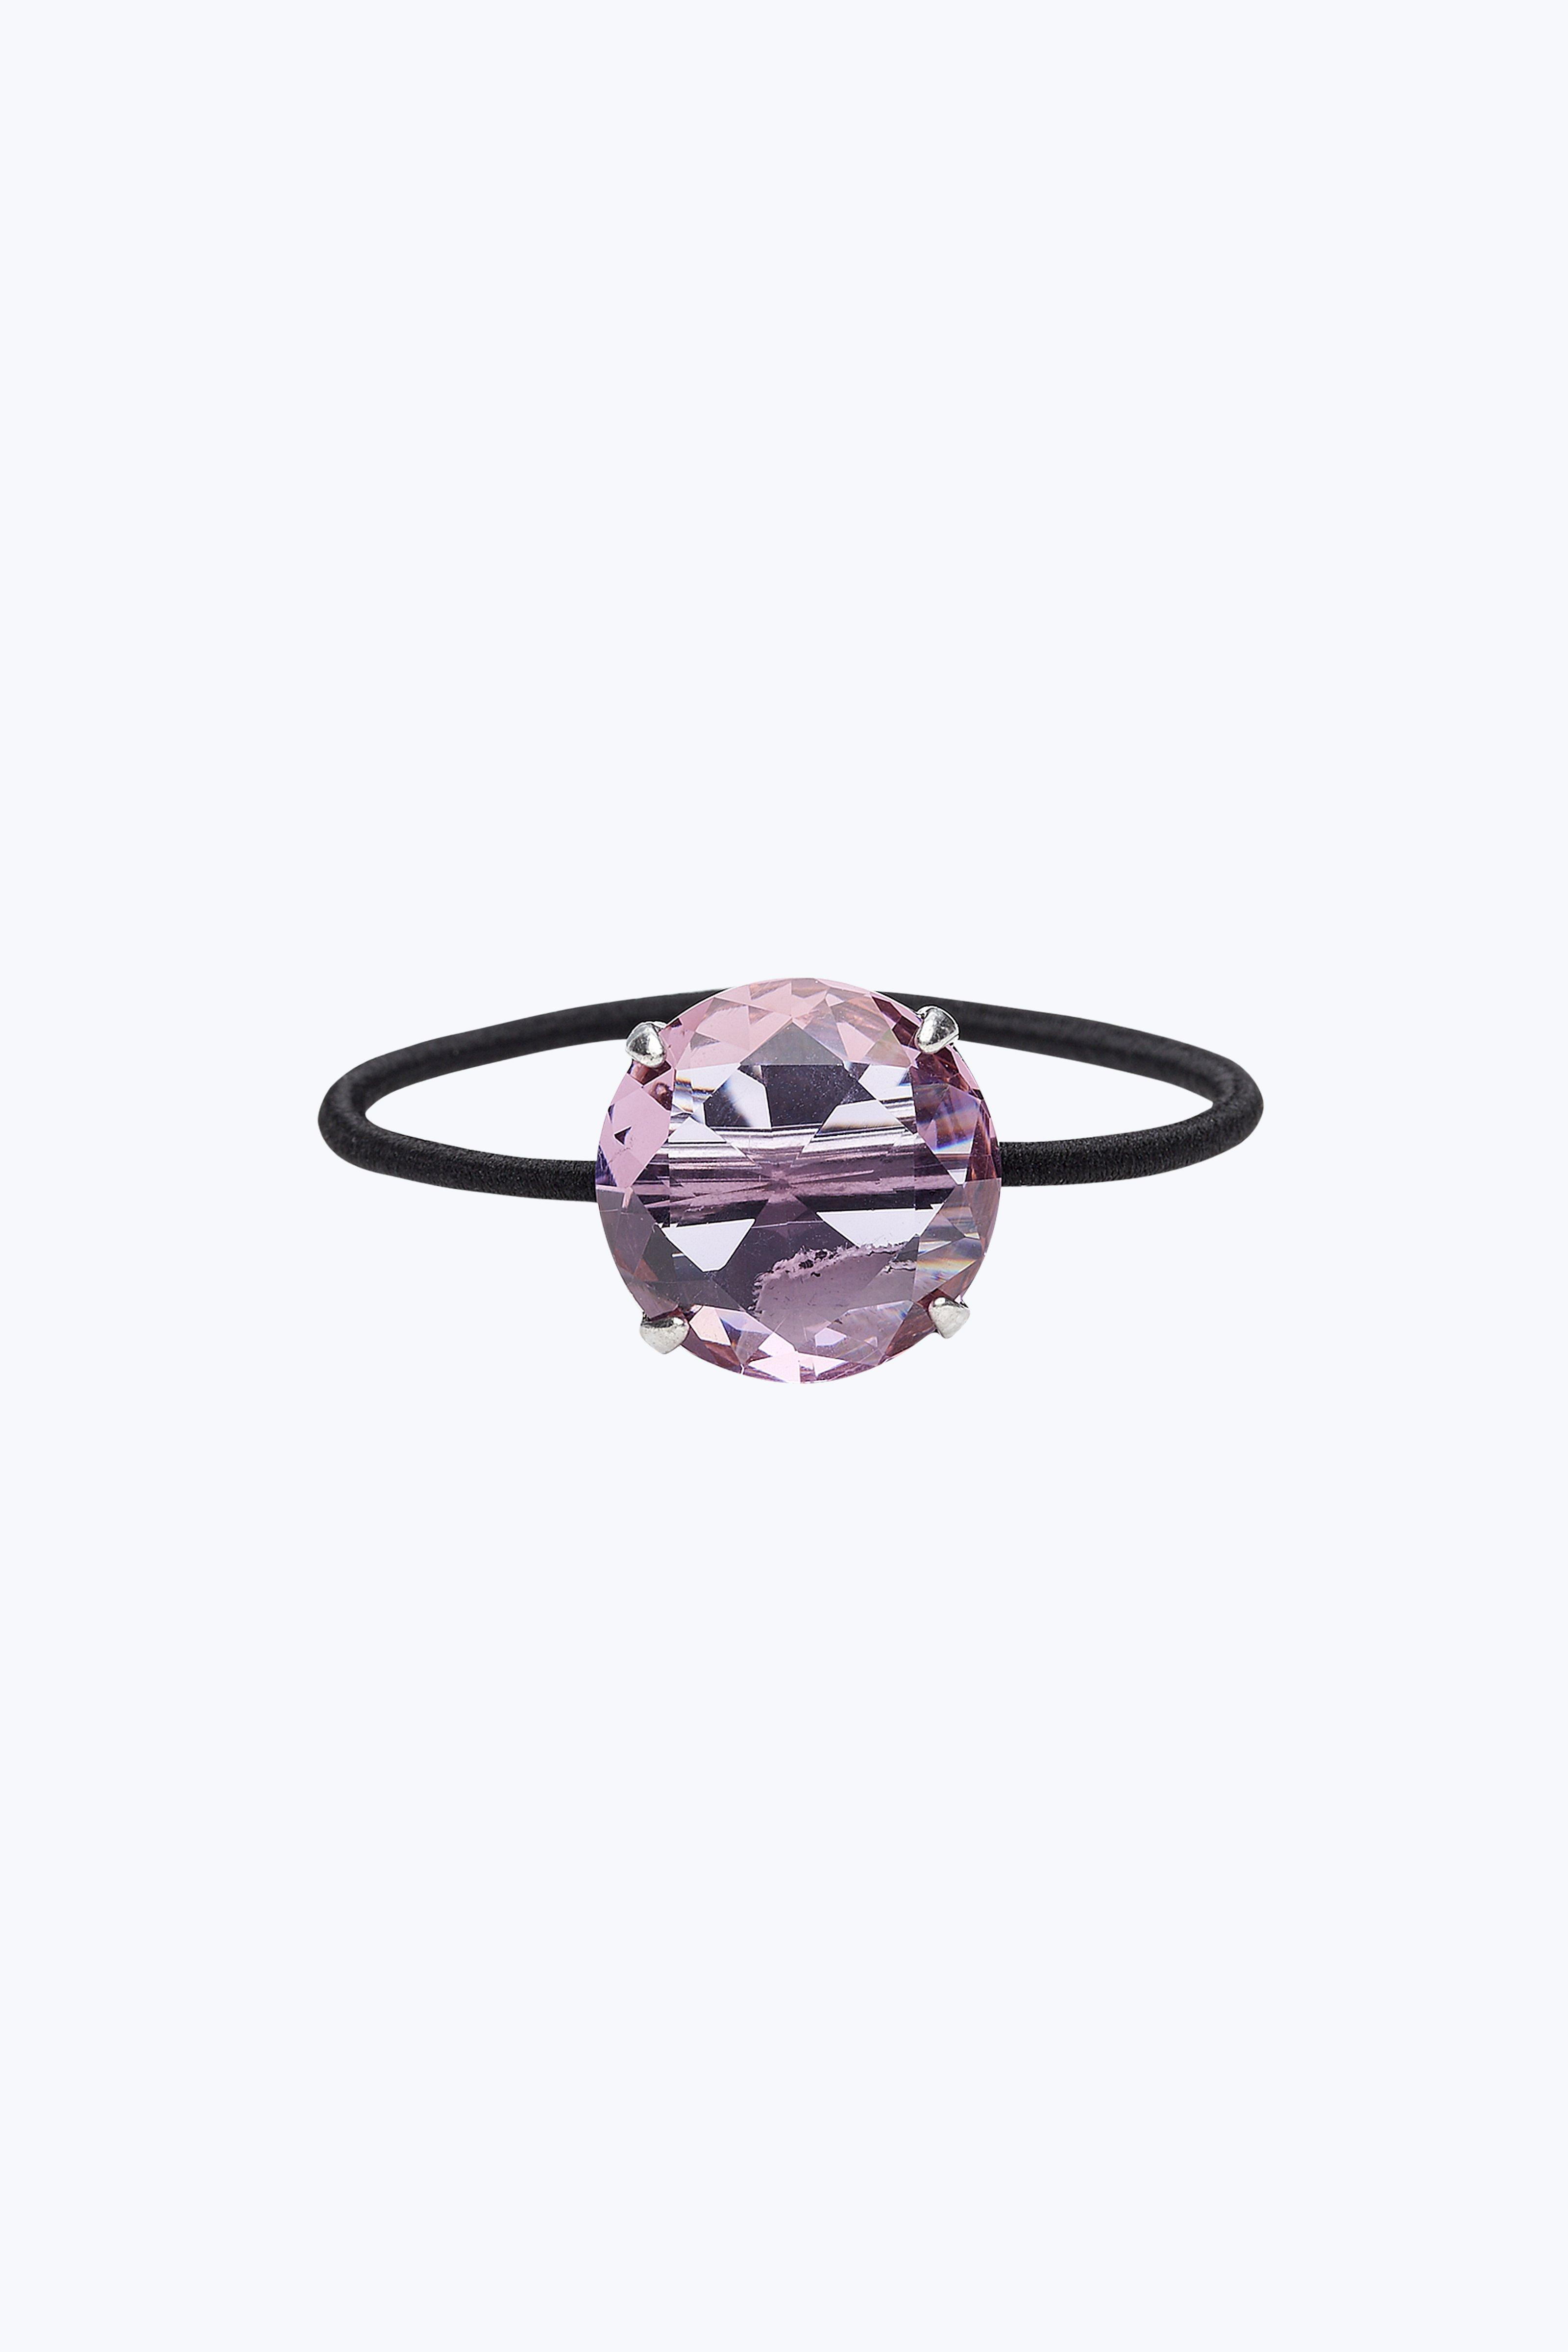 Marc Jacobs Strass Hair Elastic In Blush Rose